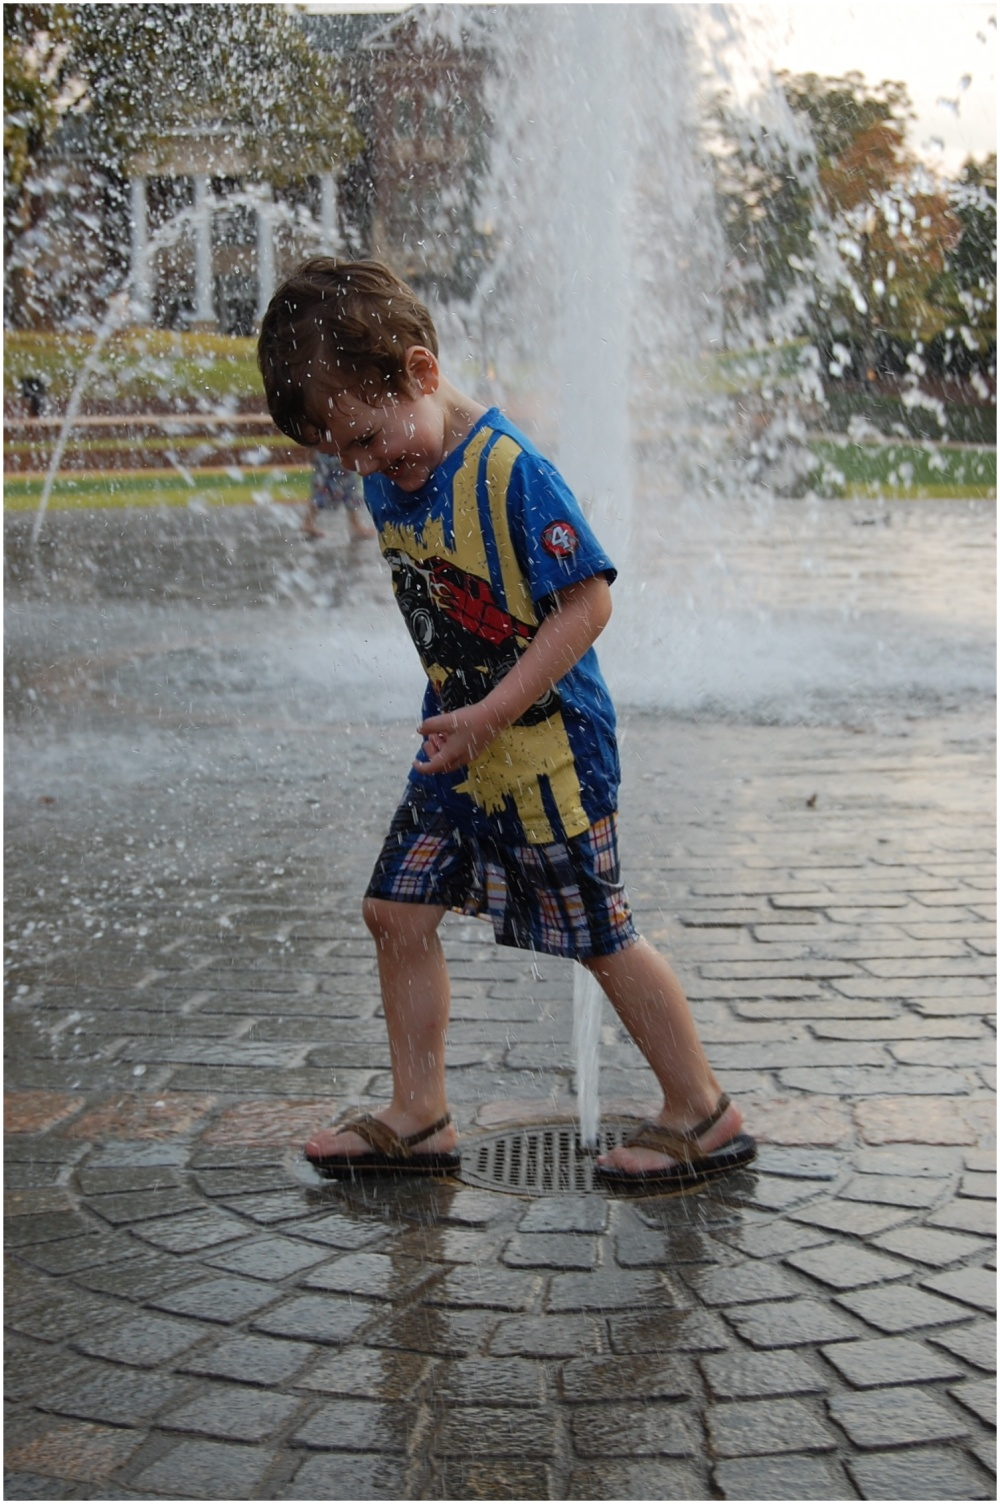 Boy running through a fountain